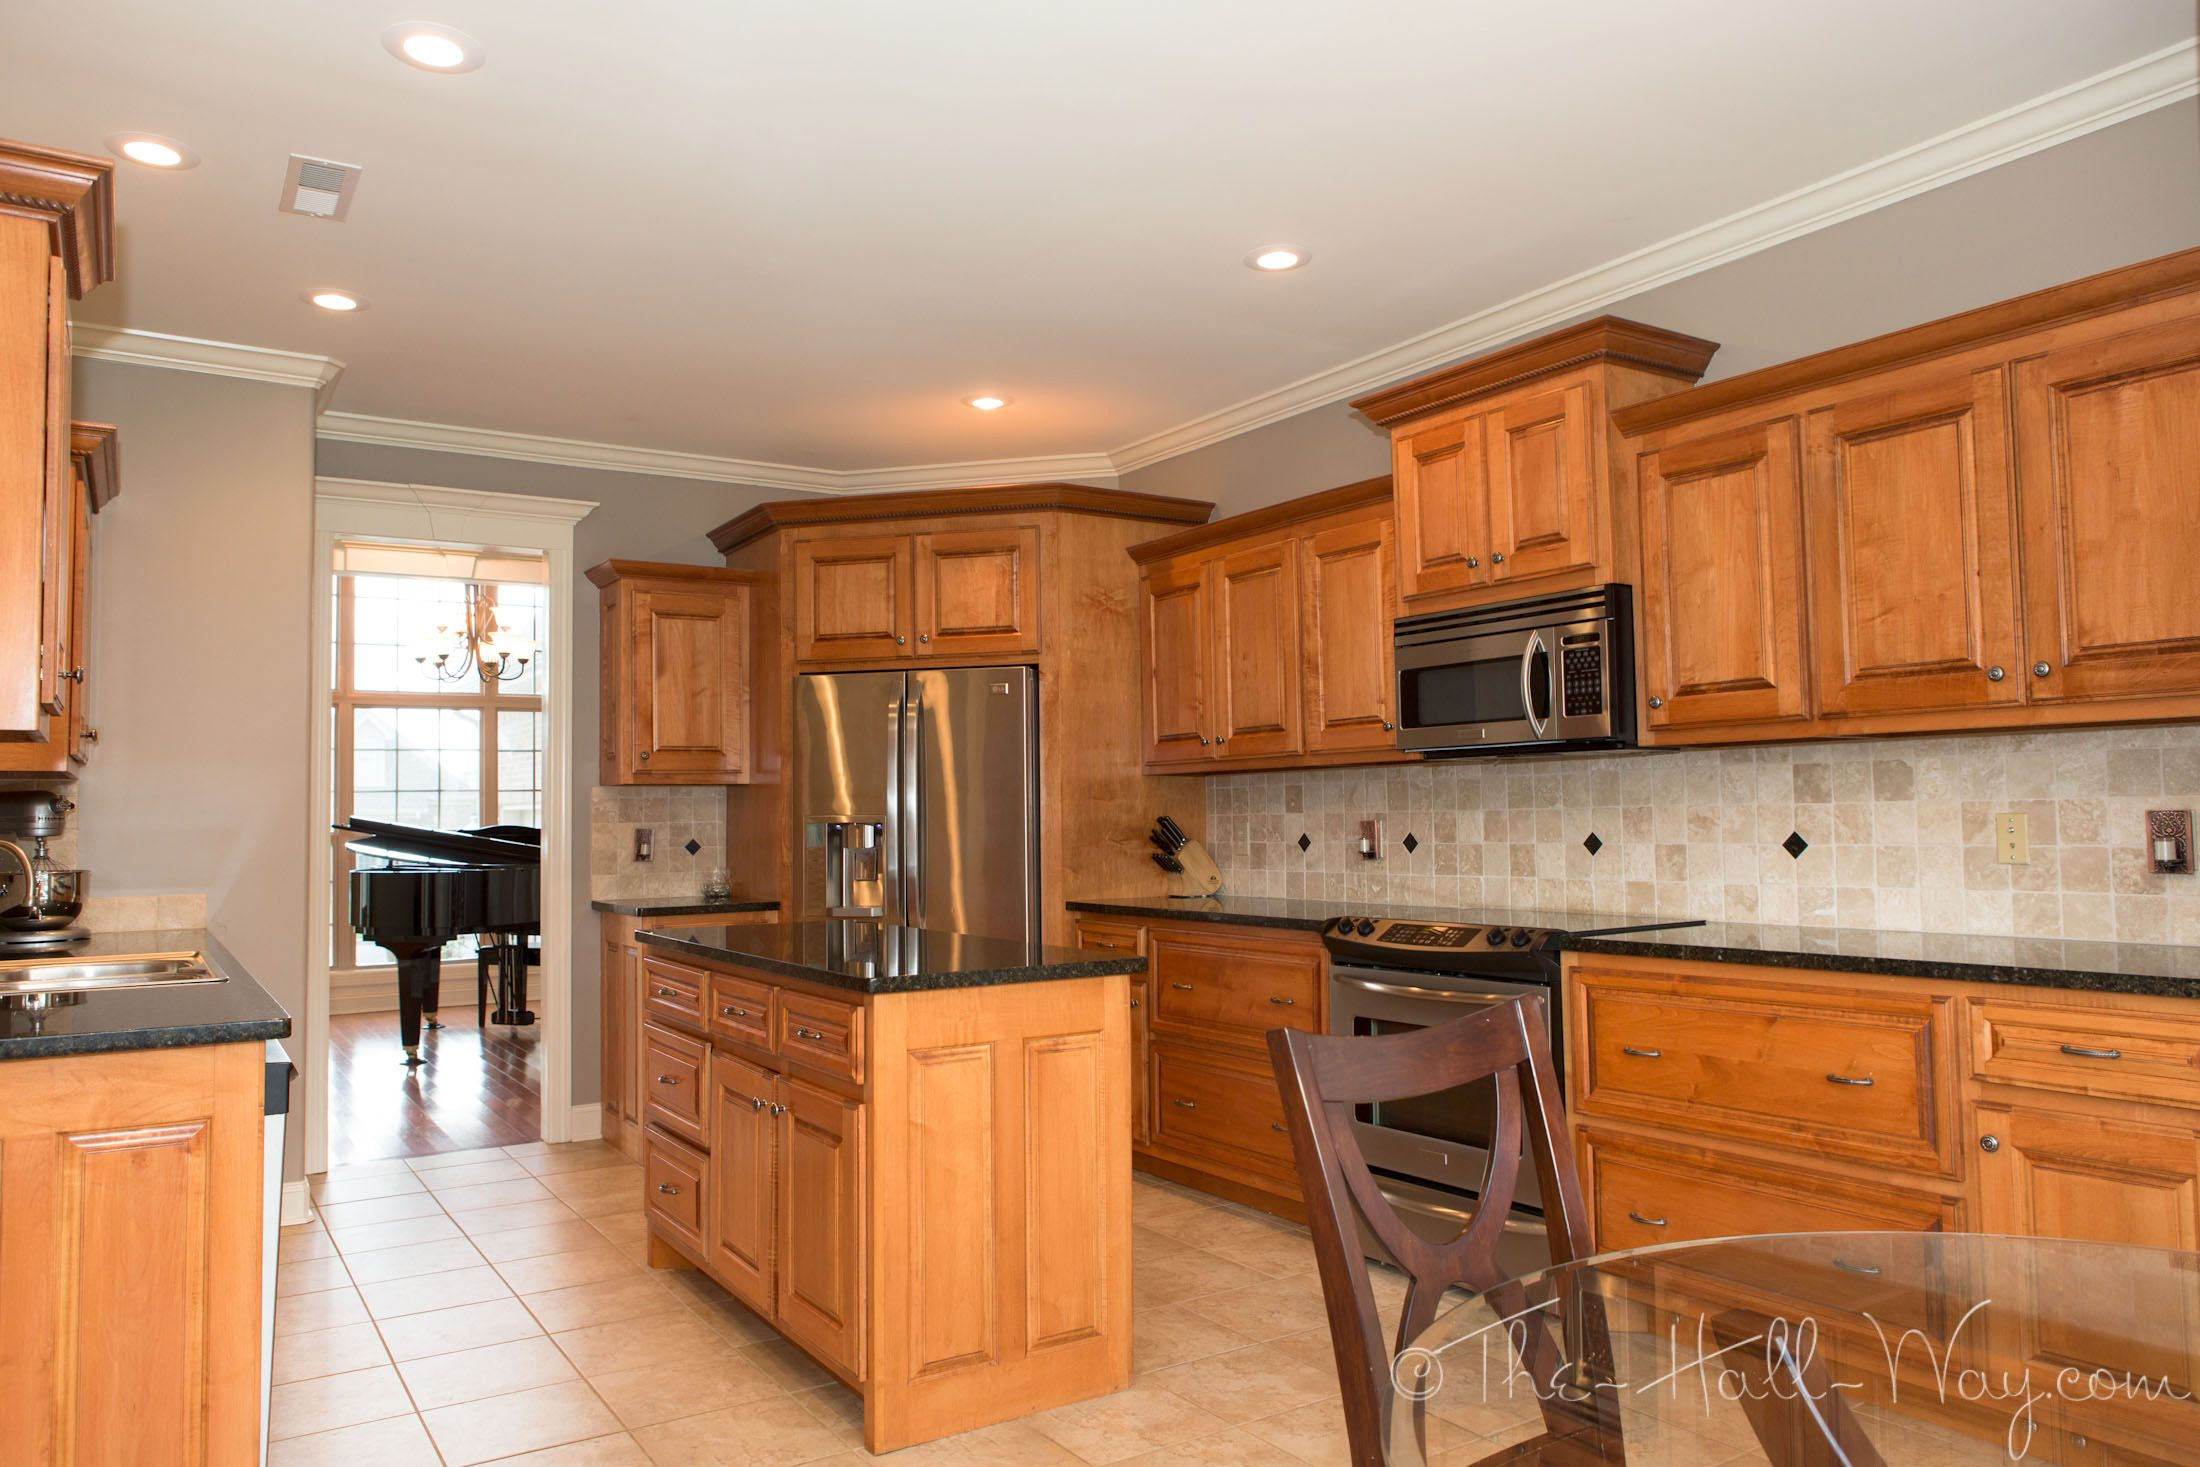 Kitchen Cabinets With Black Trim Behr Perfect Taupe Walls Maple Cabinets Tile Floor